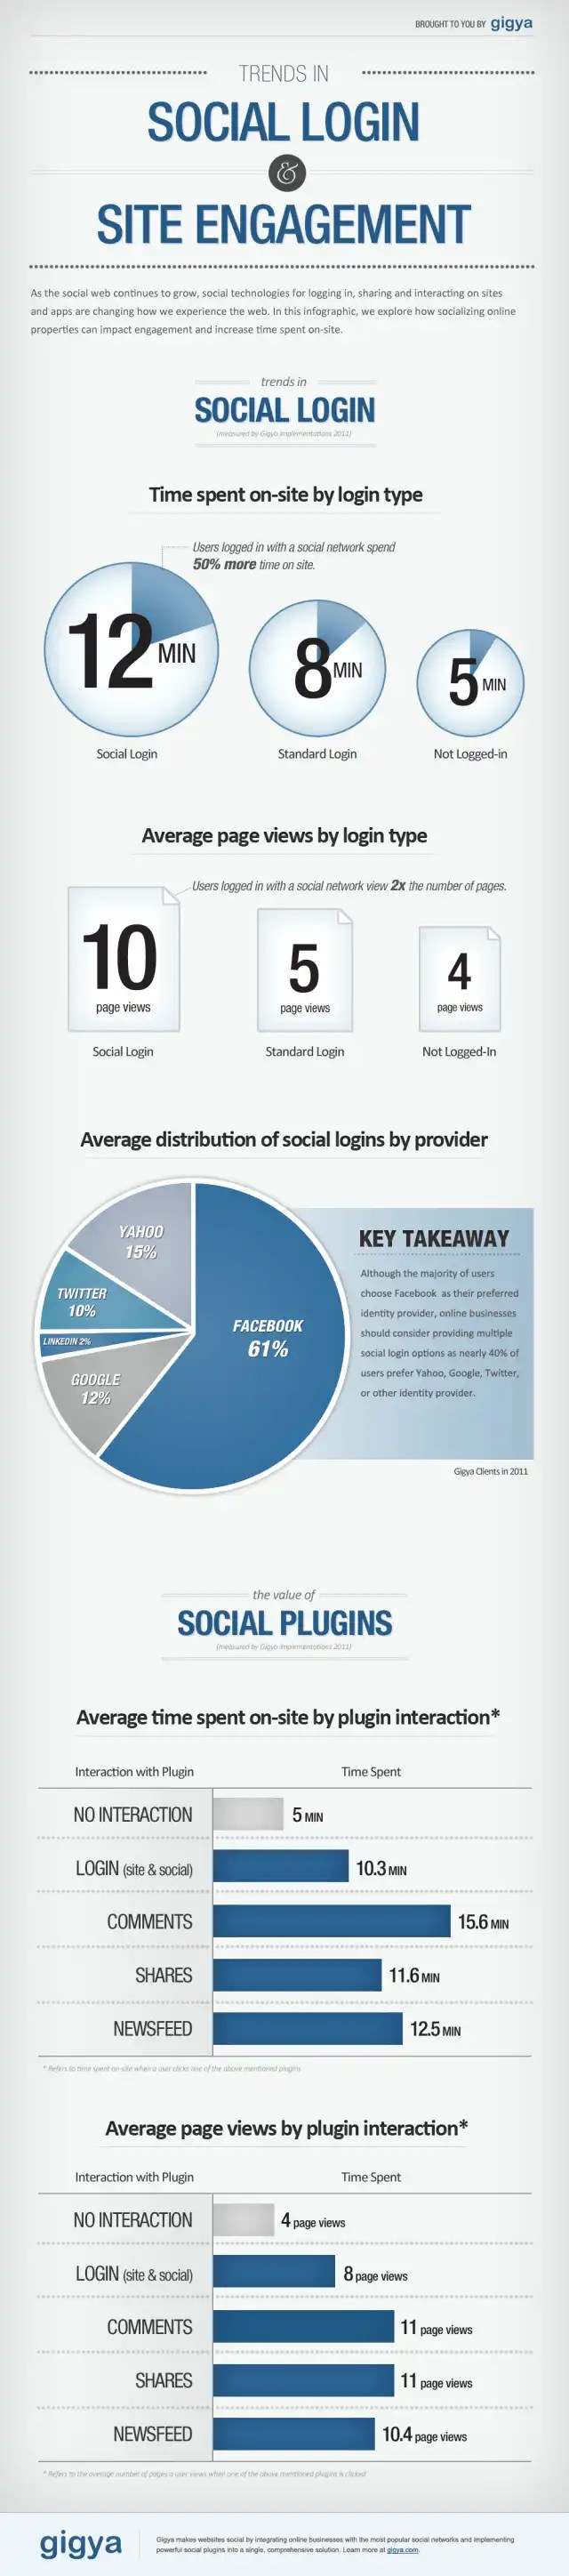 social login and engagement infographic by gigya